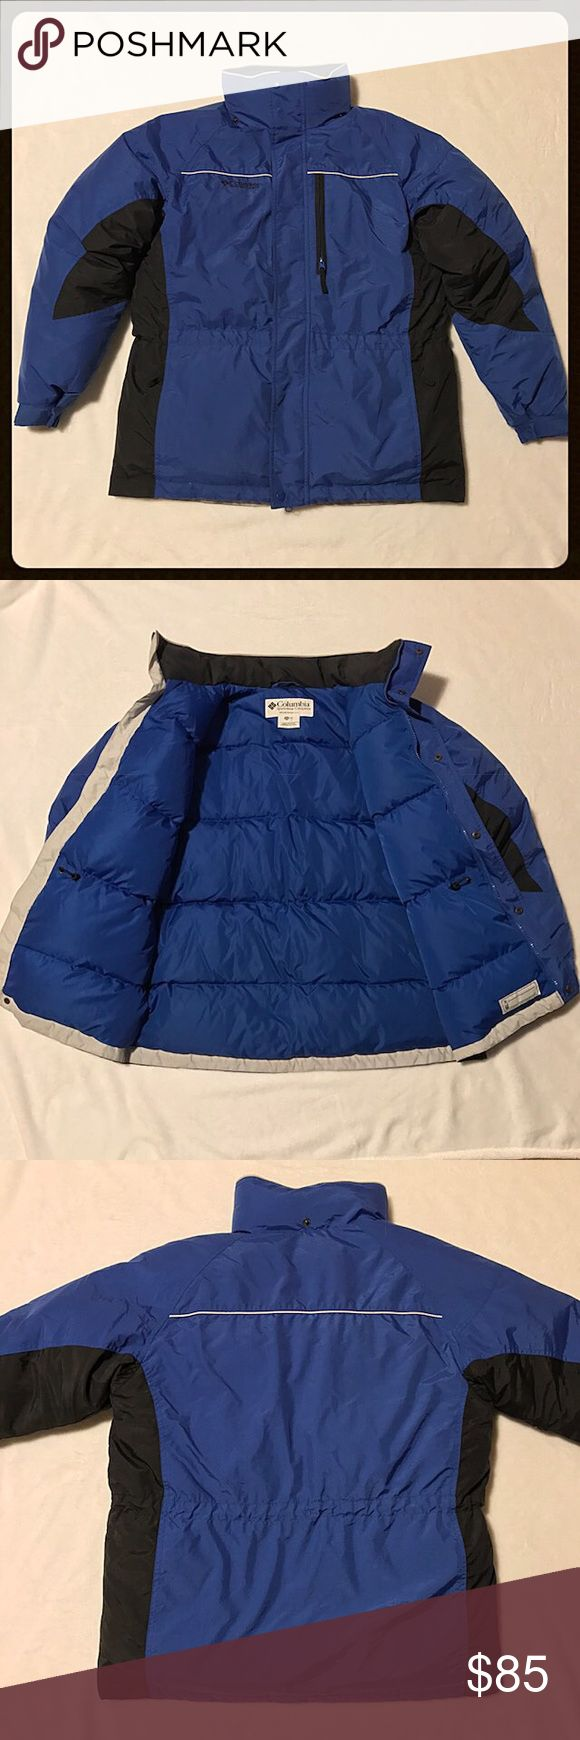 """Boy's Columbia Sportswear Company Insulated Jacket Royal blue & black insulated jacket, boy's size 18/20. 💯Nylon w/ Down & feather insulation. Zipper & snap closure. 2 zippered pockets w/ a 3rd on the left lapel. Interior drawstring at the waist. Measures 24"""" armpit to armpit, shoulder to hem 29"""". Arm length 23"""". Elastic w/ velcro sleeves. Small amount of staining on the inside collar (see pics). A little paint has chipped off the zipper & one inside snap has a little rust but does not…"""